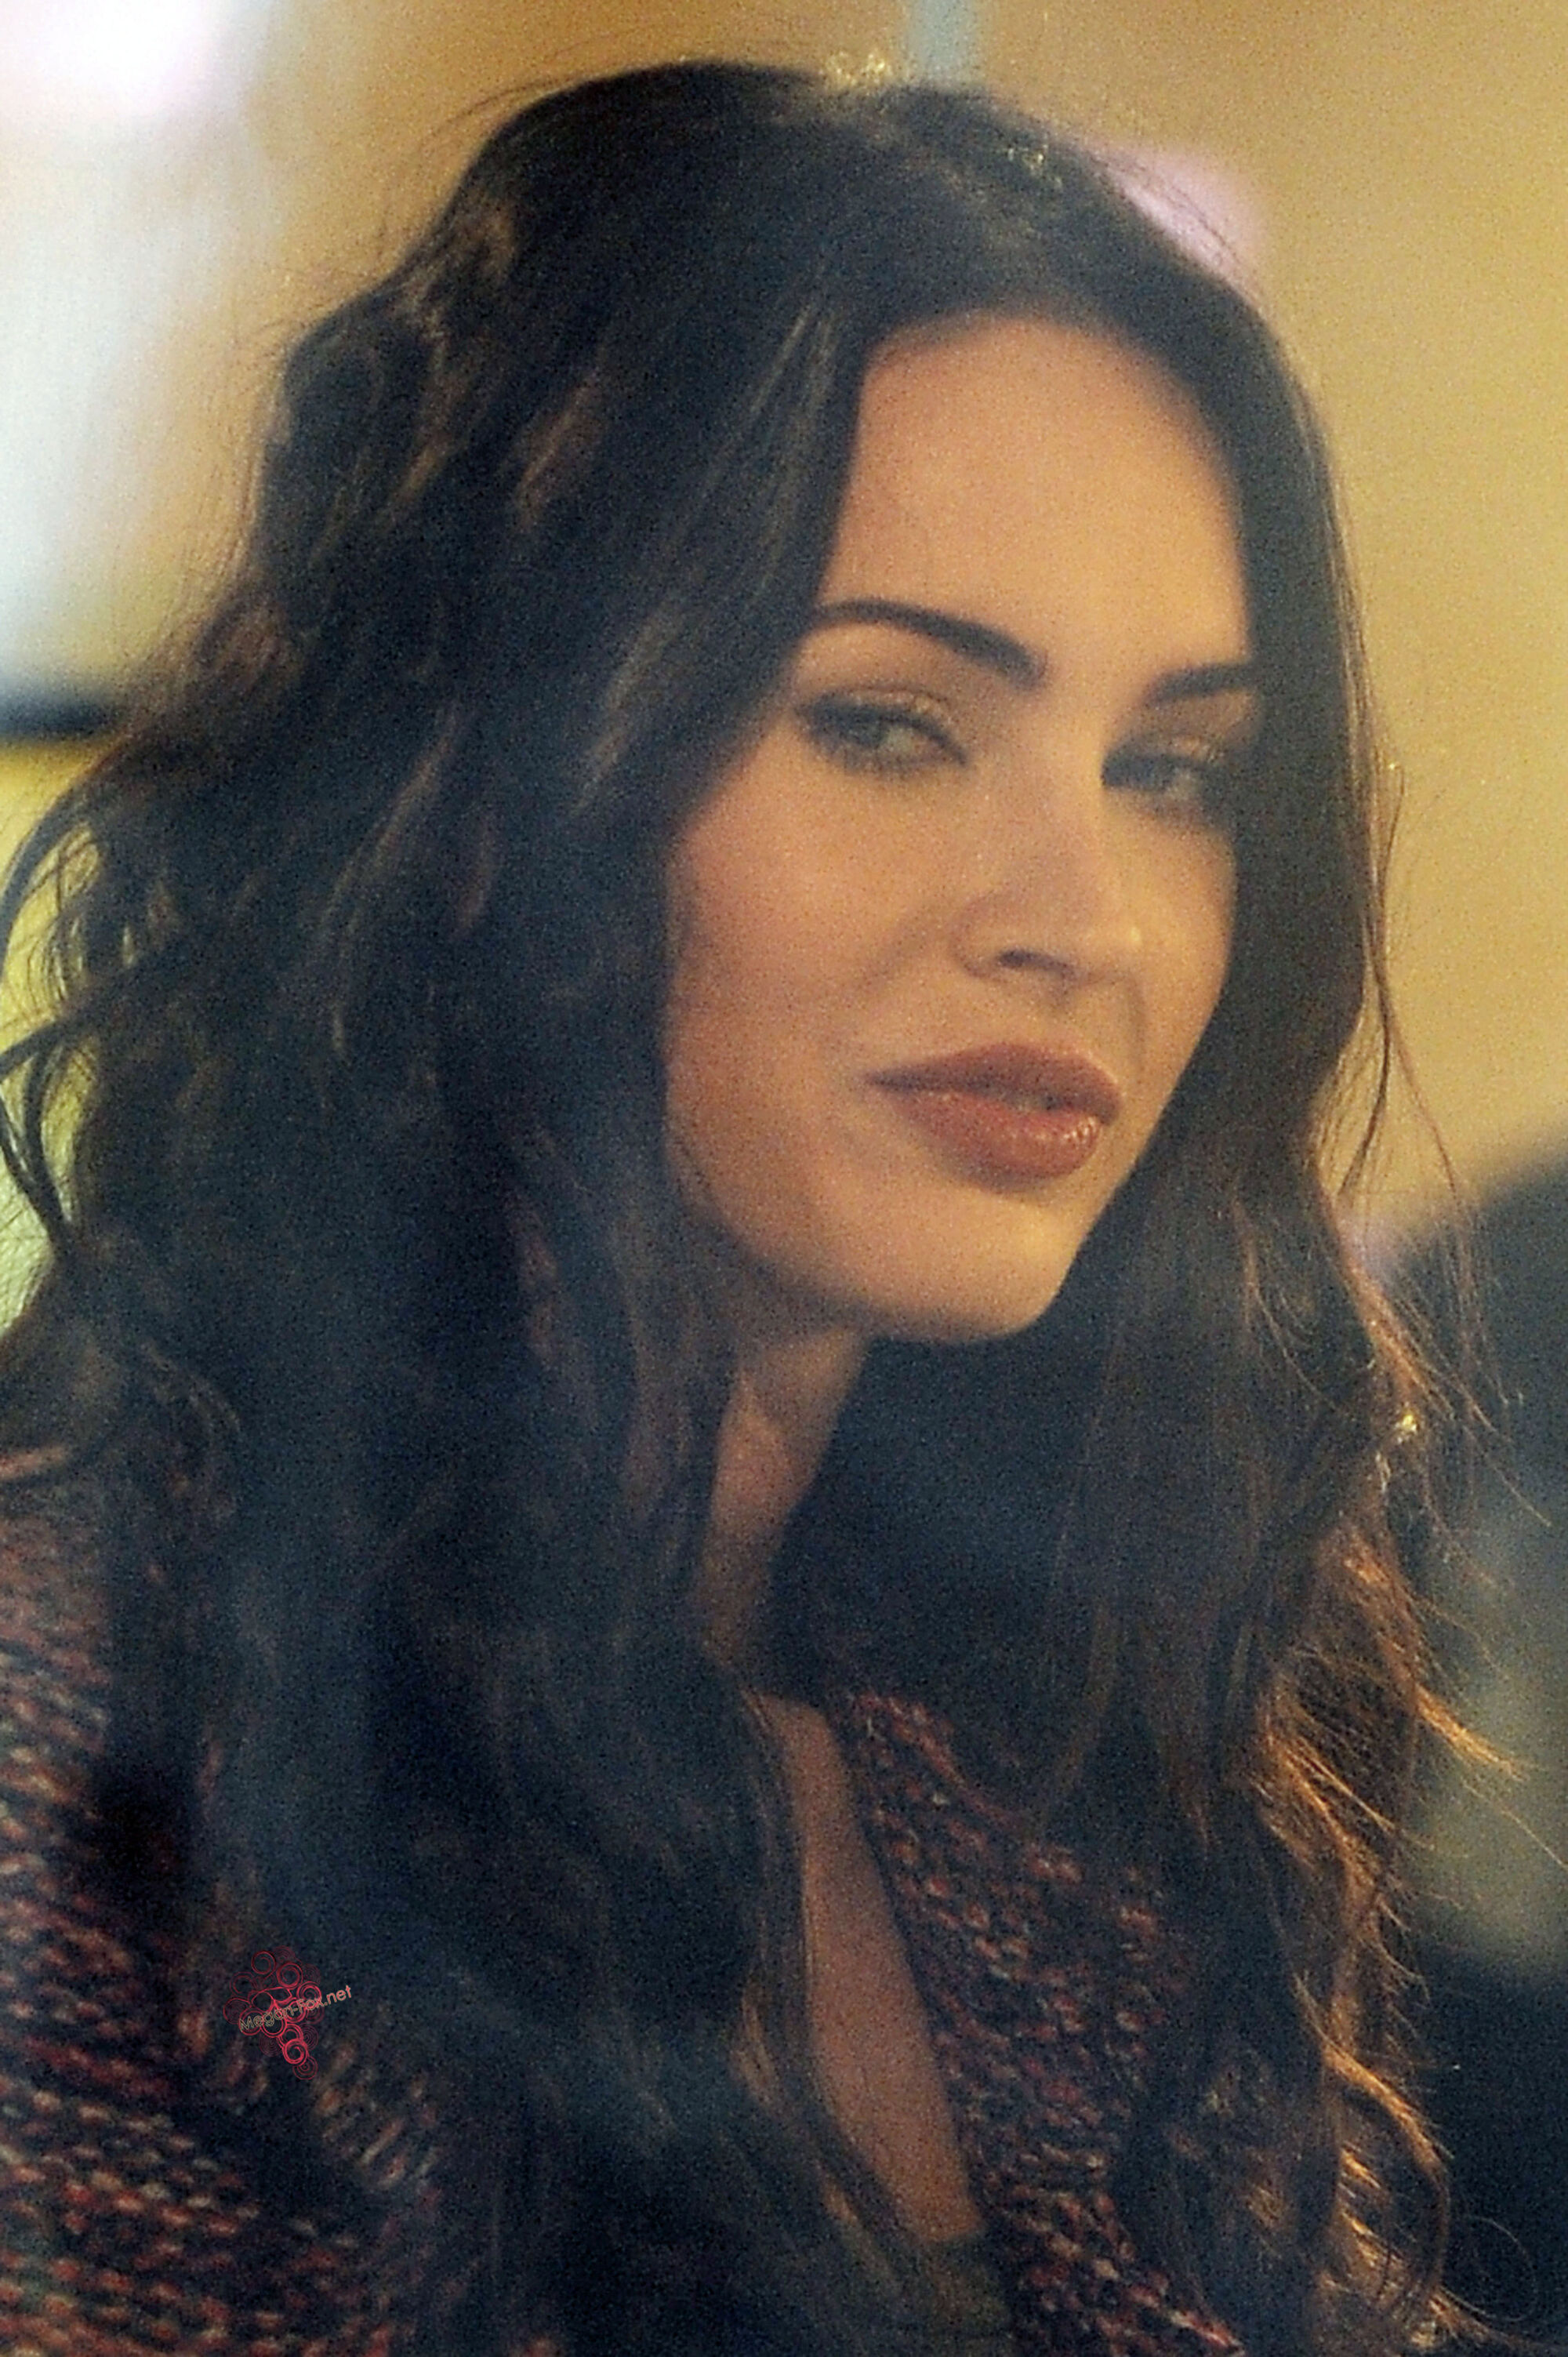 126f74f57 Megan Fox | Horror Film Wiki | FANDOM powered by Wikia